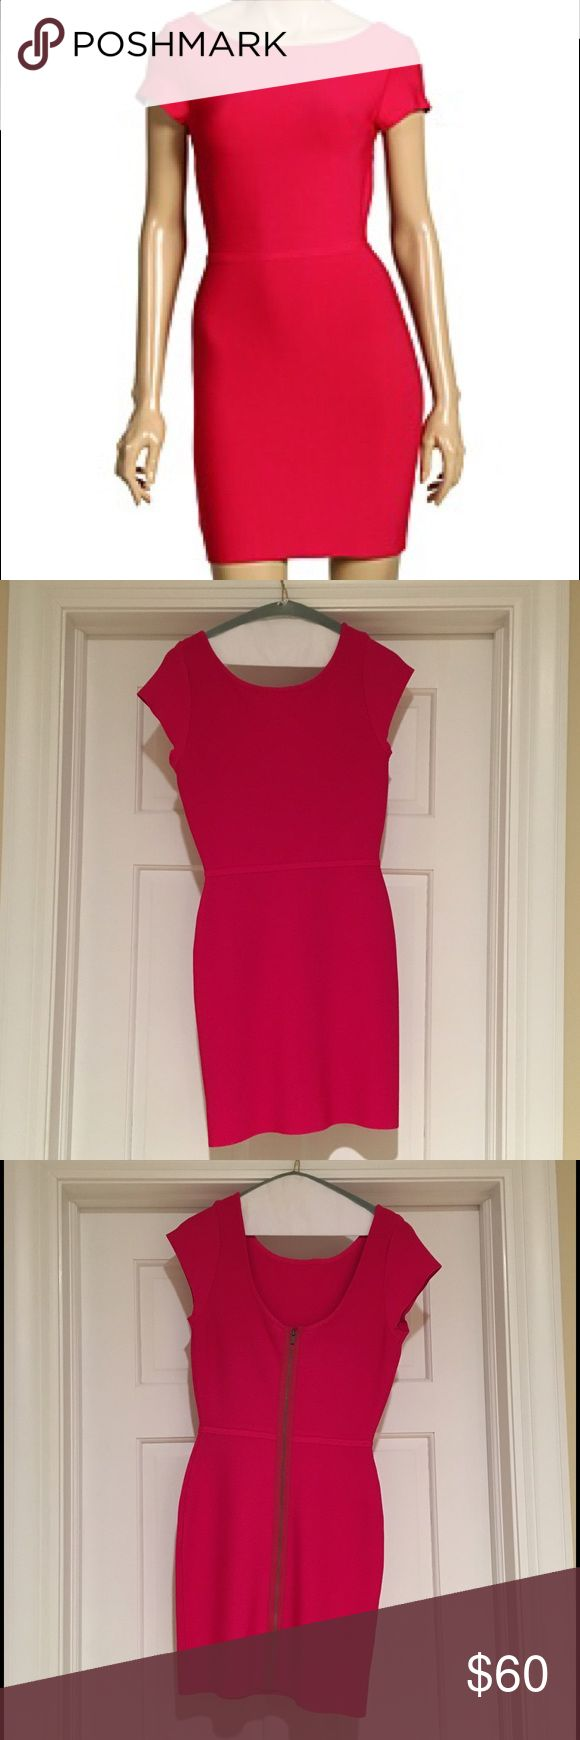 BCBGMaxAzria Hot Pink Bandage Dress Only worn twice, this is such a fun party dress! Small line of fabric around the waist to accentuate and full length zipper down the back. This dress does a great job of sucking everything in! BCBGMaxAzria Dresses Mini